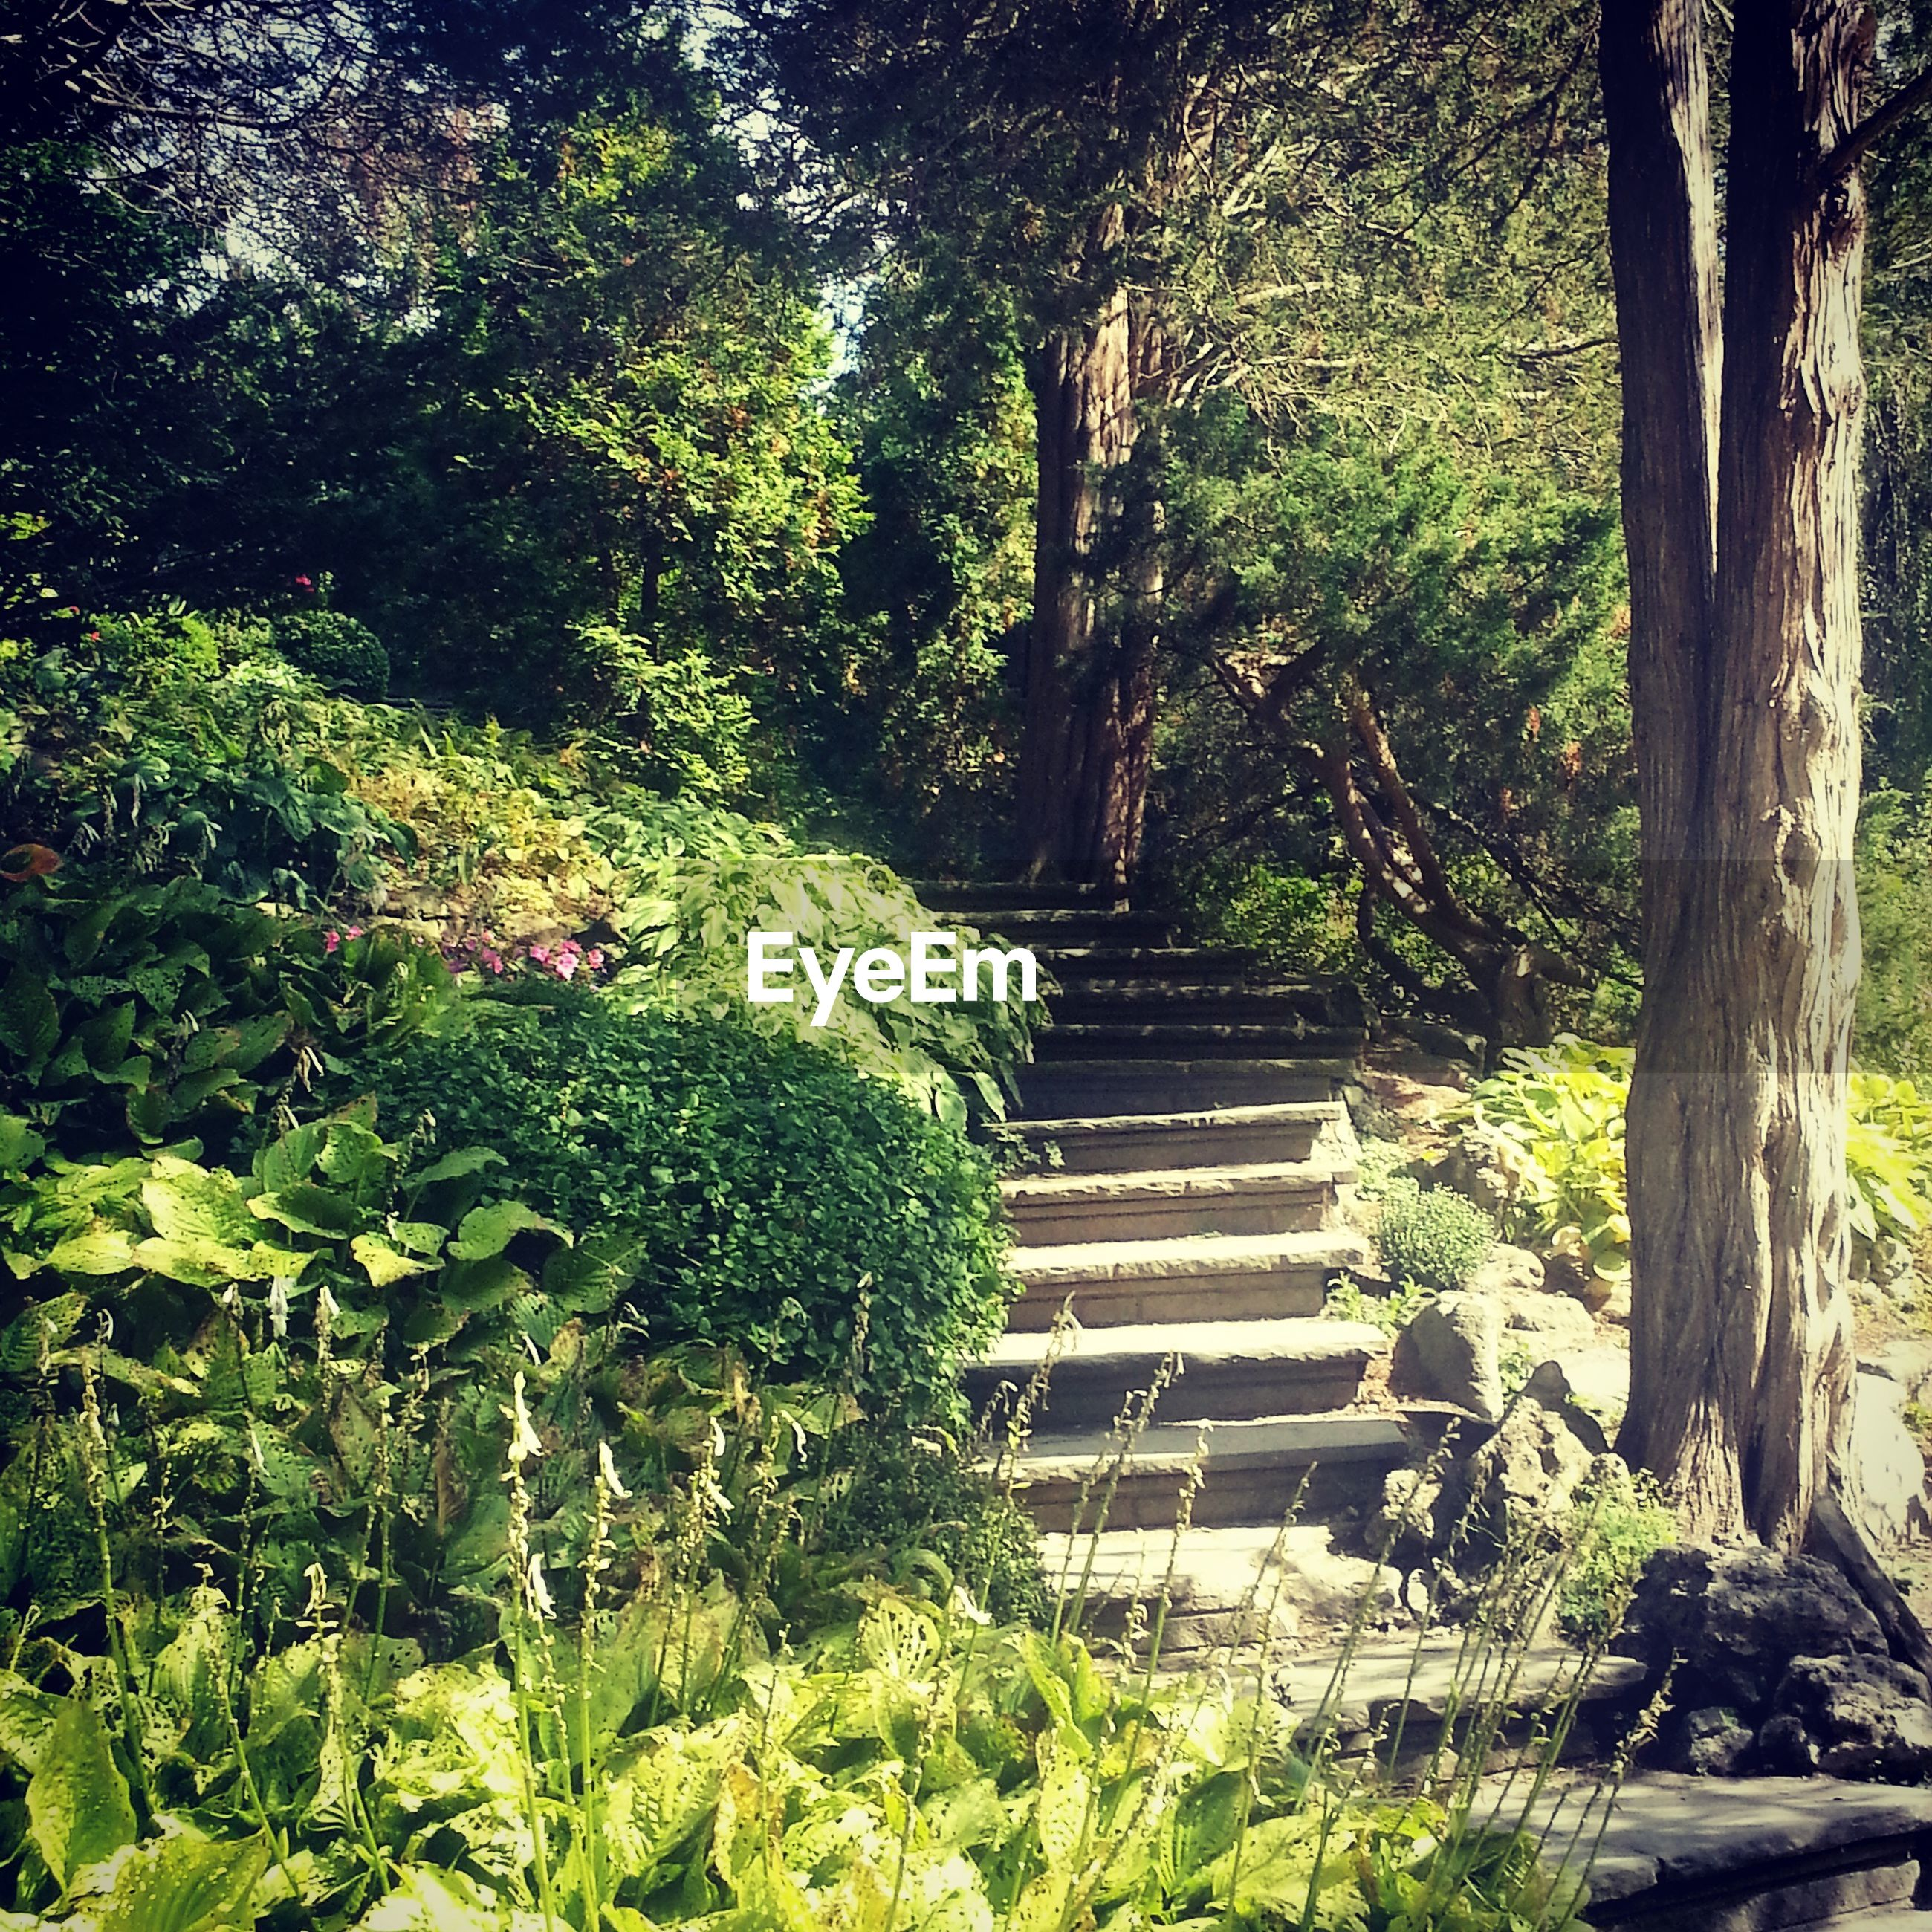 tree, growth, forest, tranquility, steps, the way forward, nature, plant, green color, beauty in nature, tranquil scene, tree trunk, park - man made space, footpath, branch, day, outdoors, lush foliage, no people, scenics